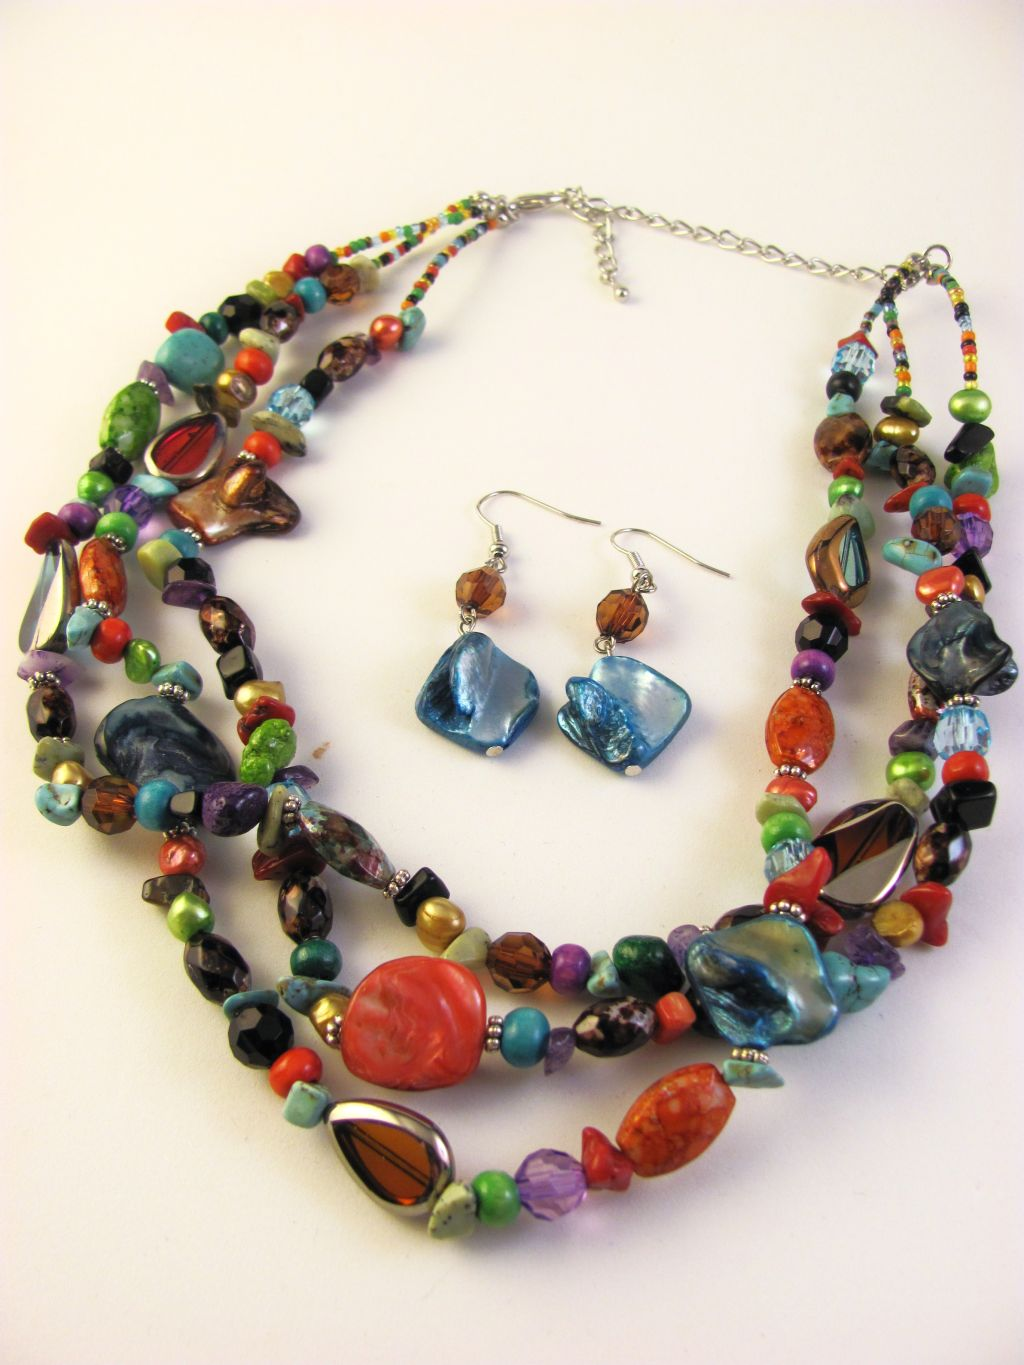 Multi-Layers Summer Colors Necklace Earrings, Turquoise Shells Beads